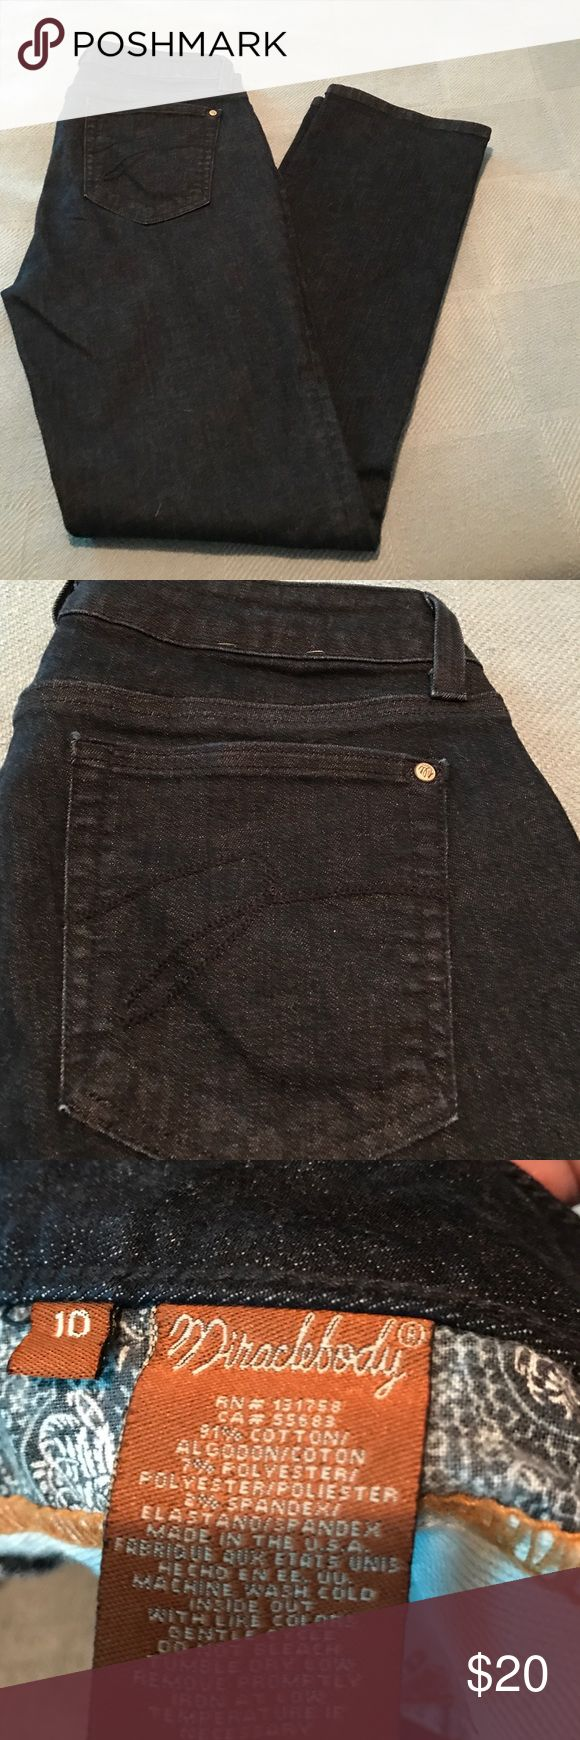 Miraclebody jeans in great condition Dark blue soft jean material never worn. Not Michael Korrs just placed here for exposure. Size 10 Michael Kors Jeans Straight Leg